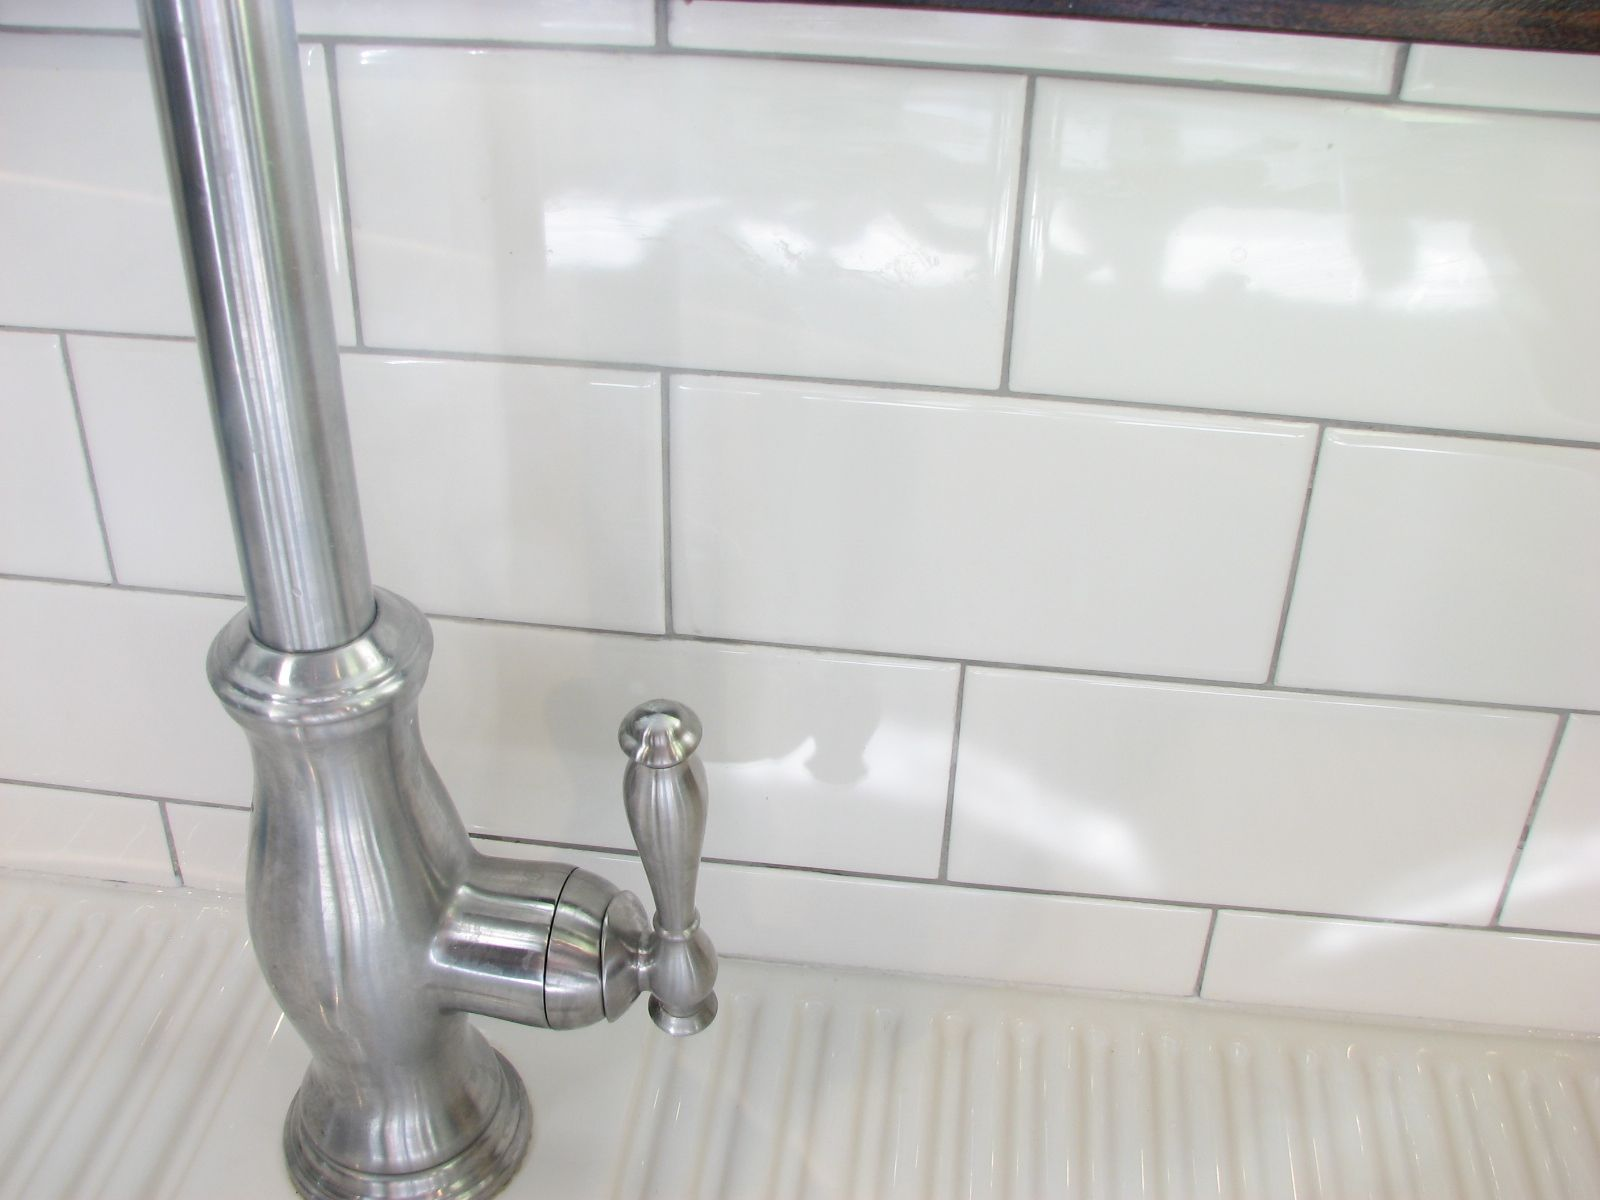 subway tile with silver grout and white caulking along bottom